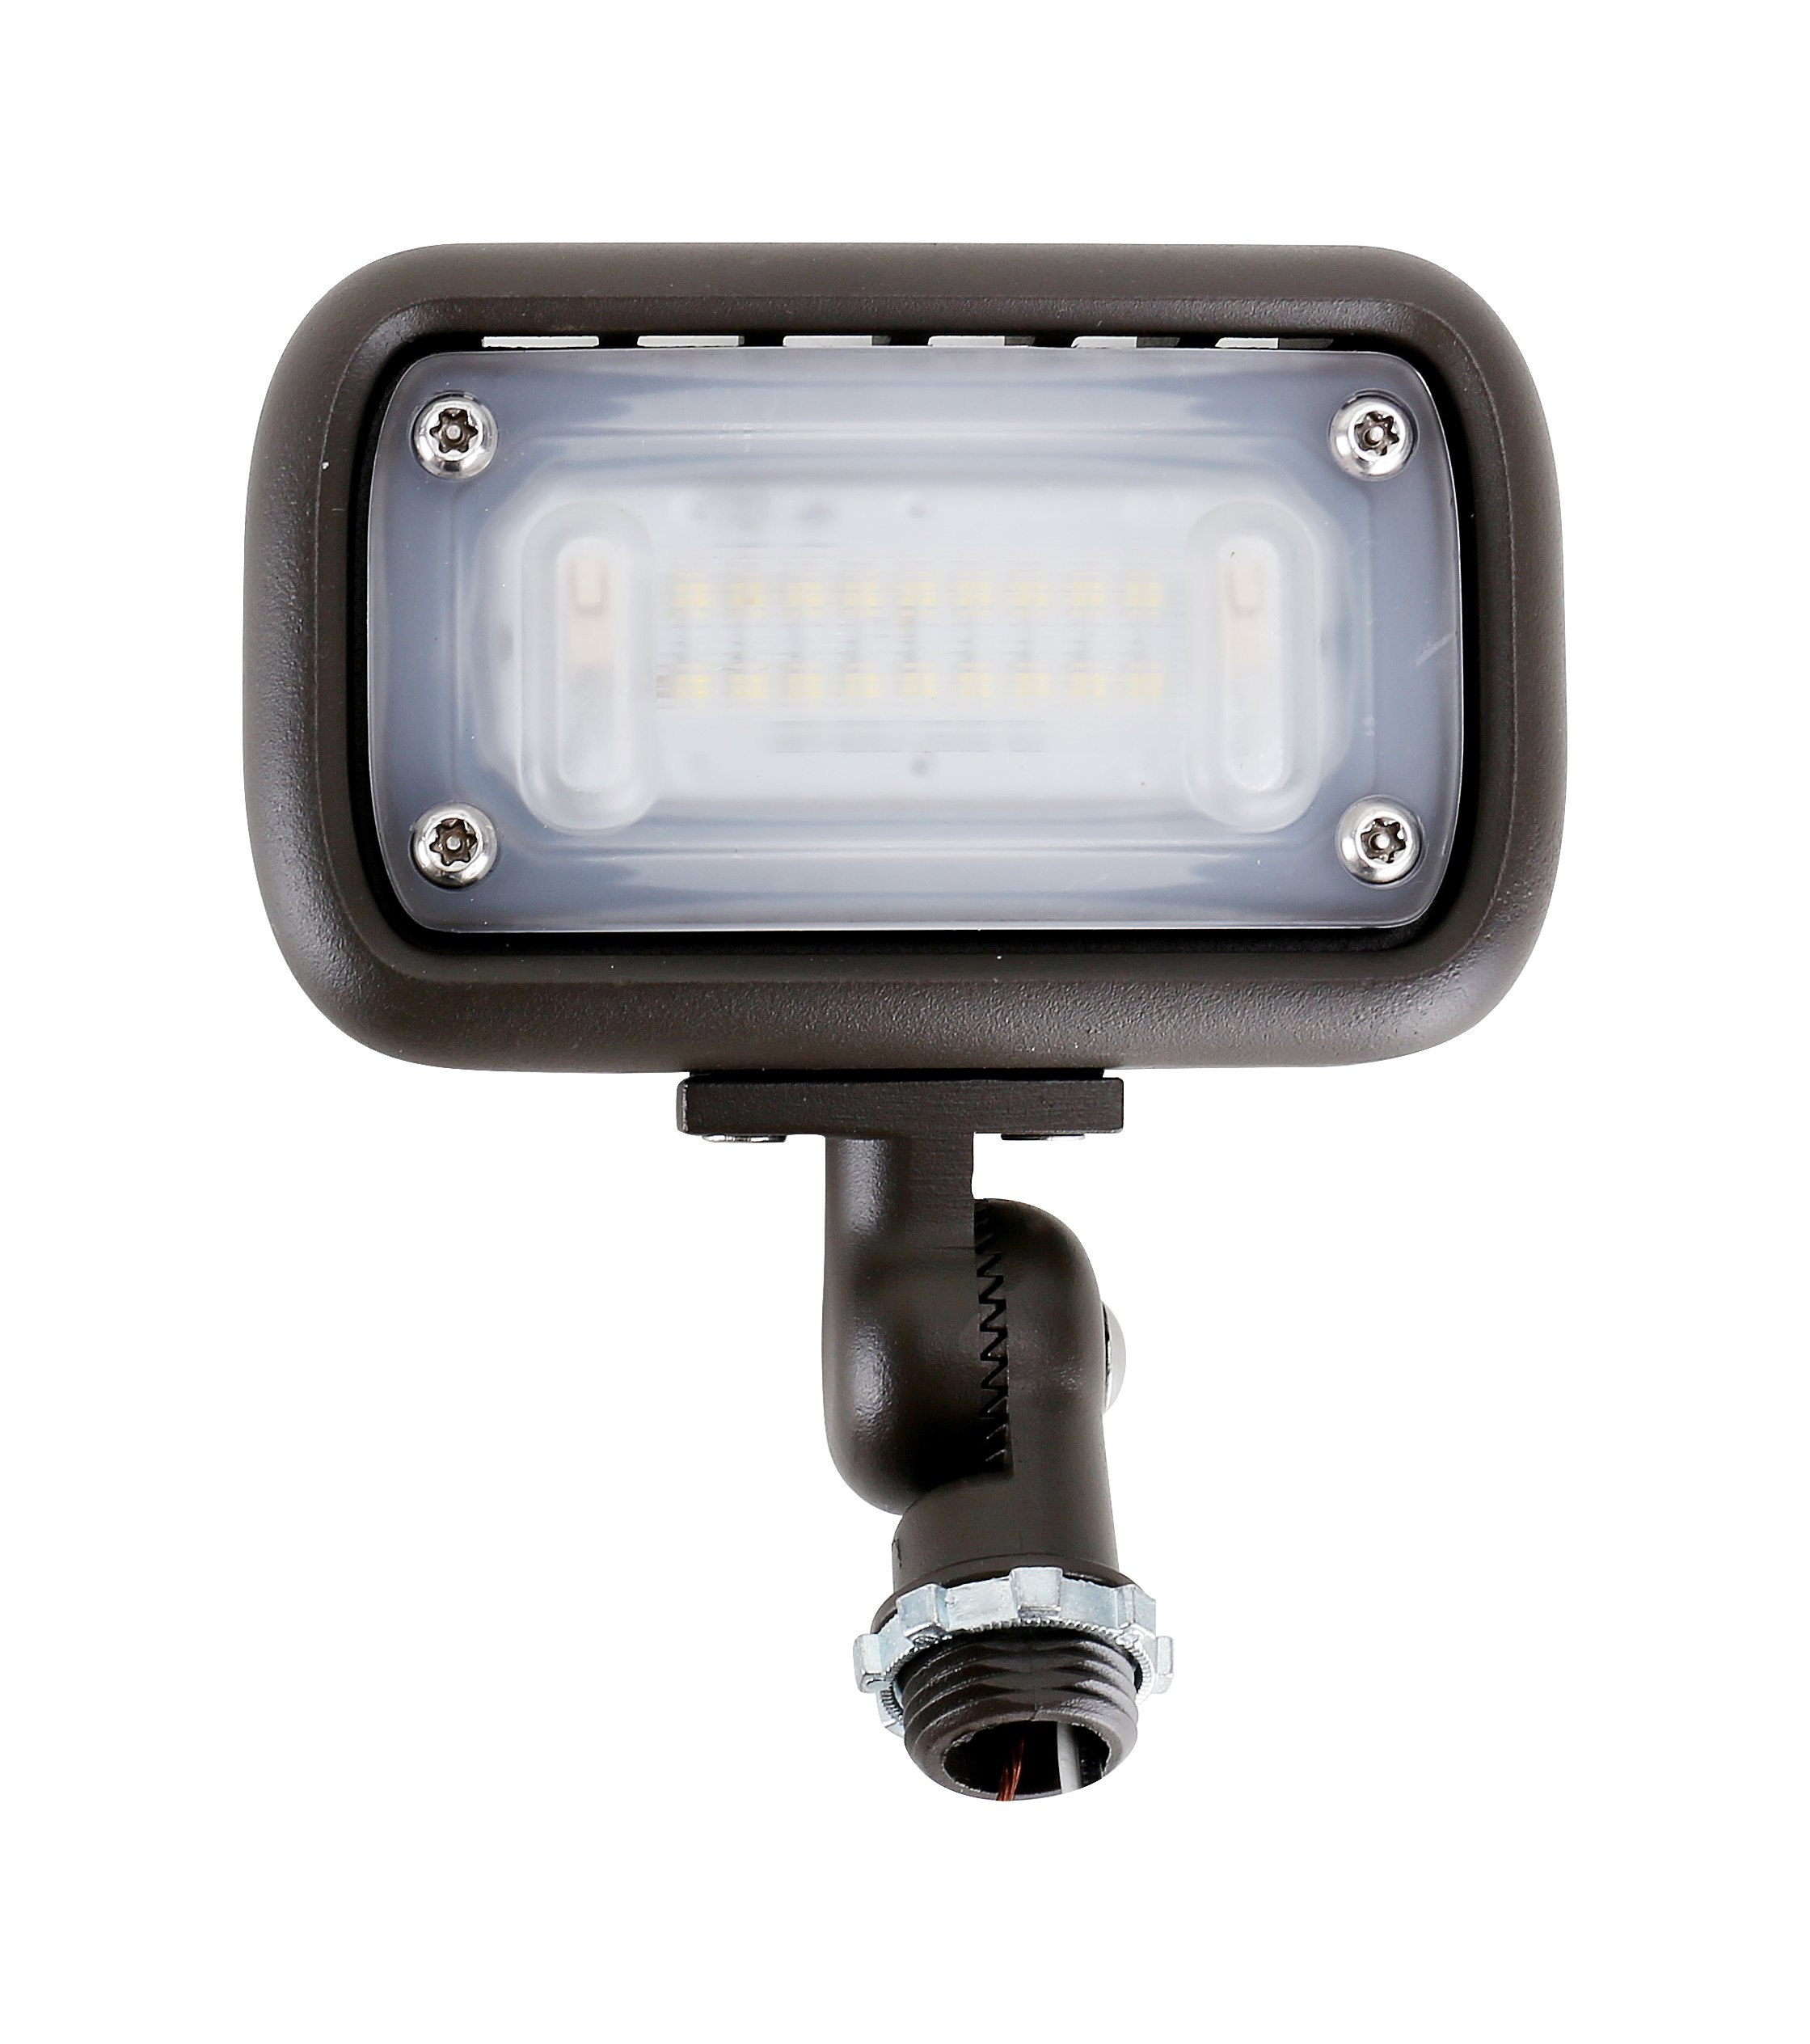 15W Outdoor LED Flood Security Lights, Waterproof Landscape Lighting, 50W PSMH Equivalent, 1500 Lumens, 4000K Cool White, 1/2'' Adjustable Knuckle, UL-Listed, DLC4.2 Qualifiled, 5 Years Warranty